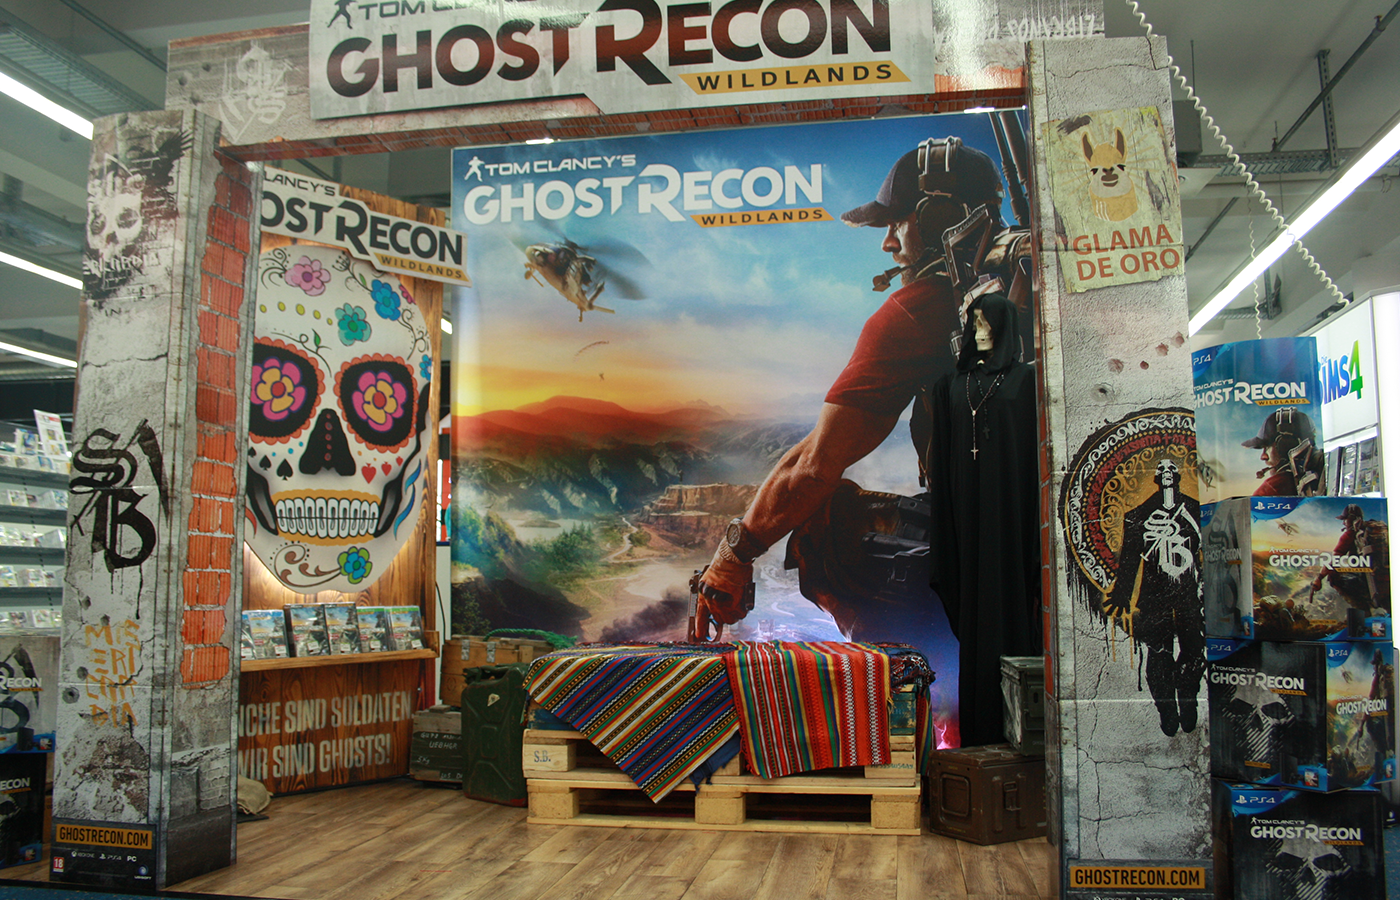 Ubisoft – Ghost Recon Wildlands POS